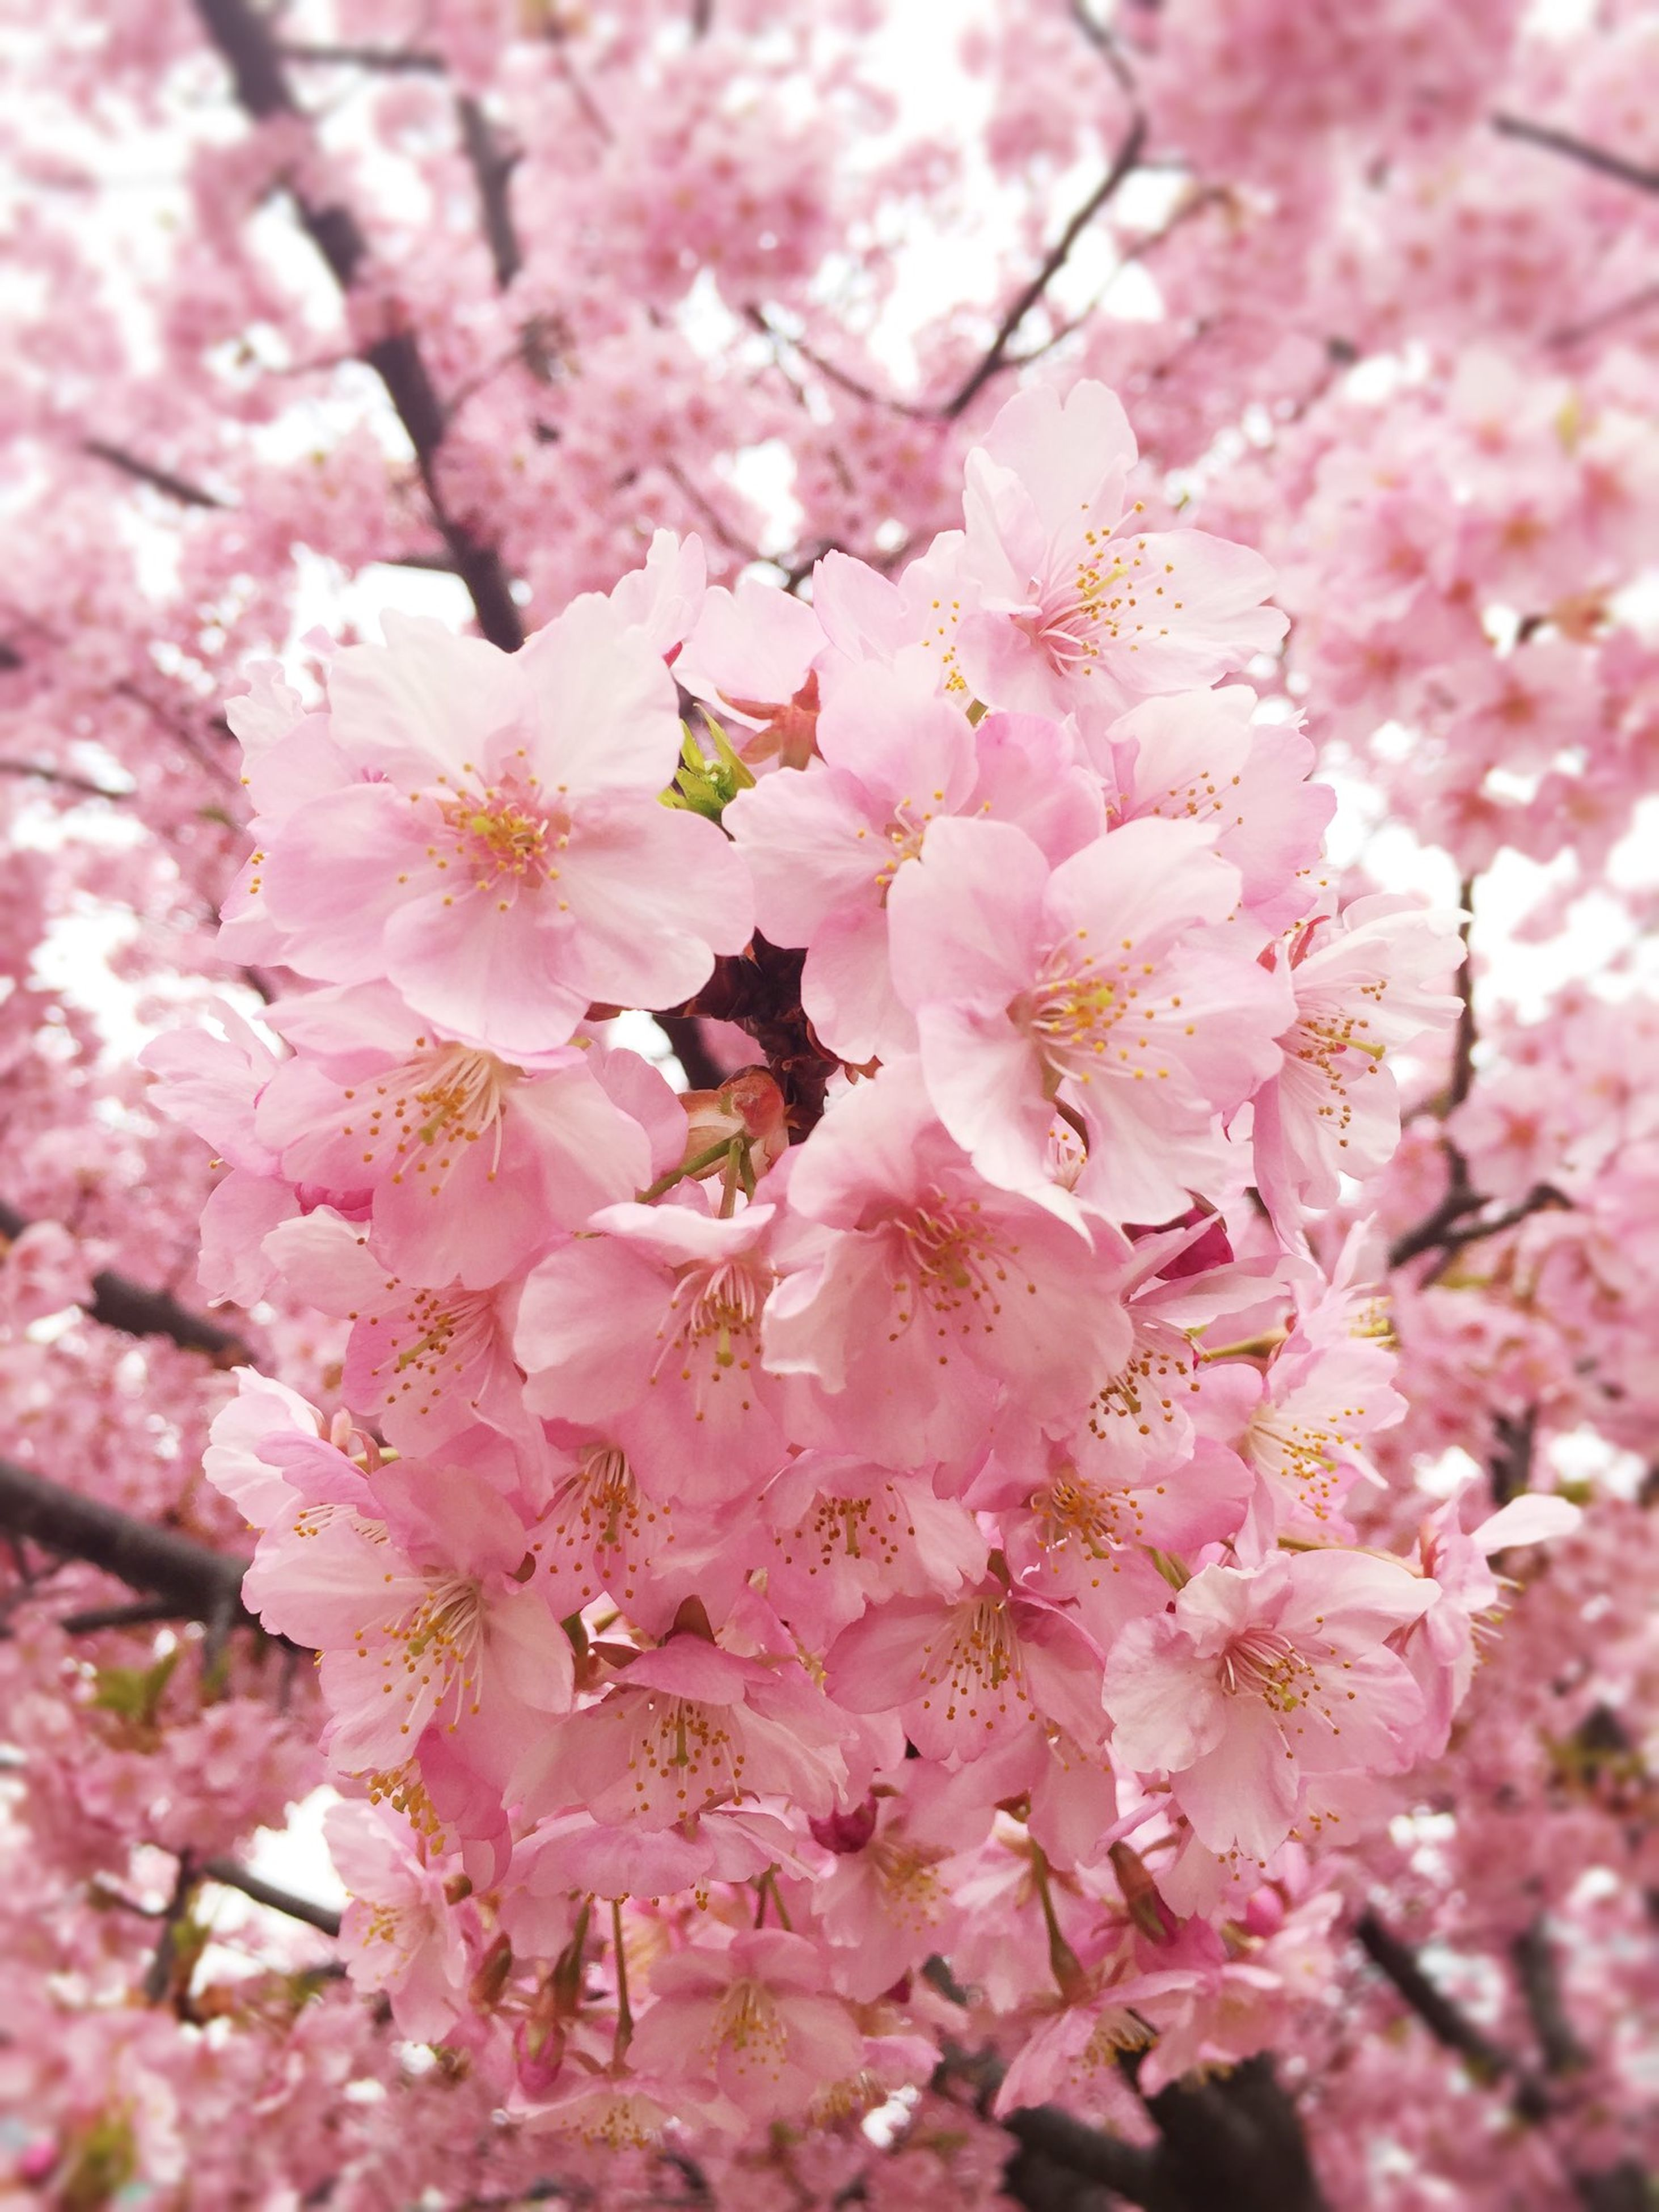 flower, freshness, cherry blossom, tree, pink color, growth, fragility, branch, beauty in nature, cherry tree, blossom, nature, petal, in bloom, pink, springtime, blooming, close-up, fruit tree, low angle view